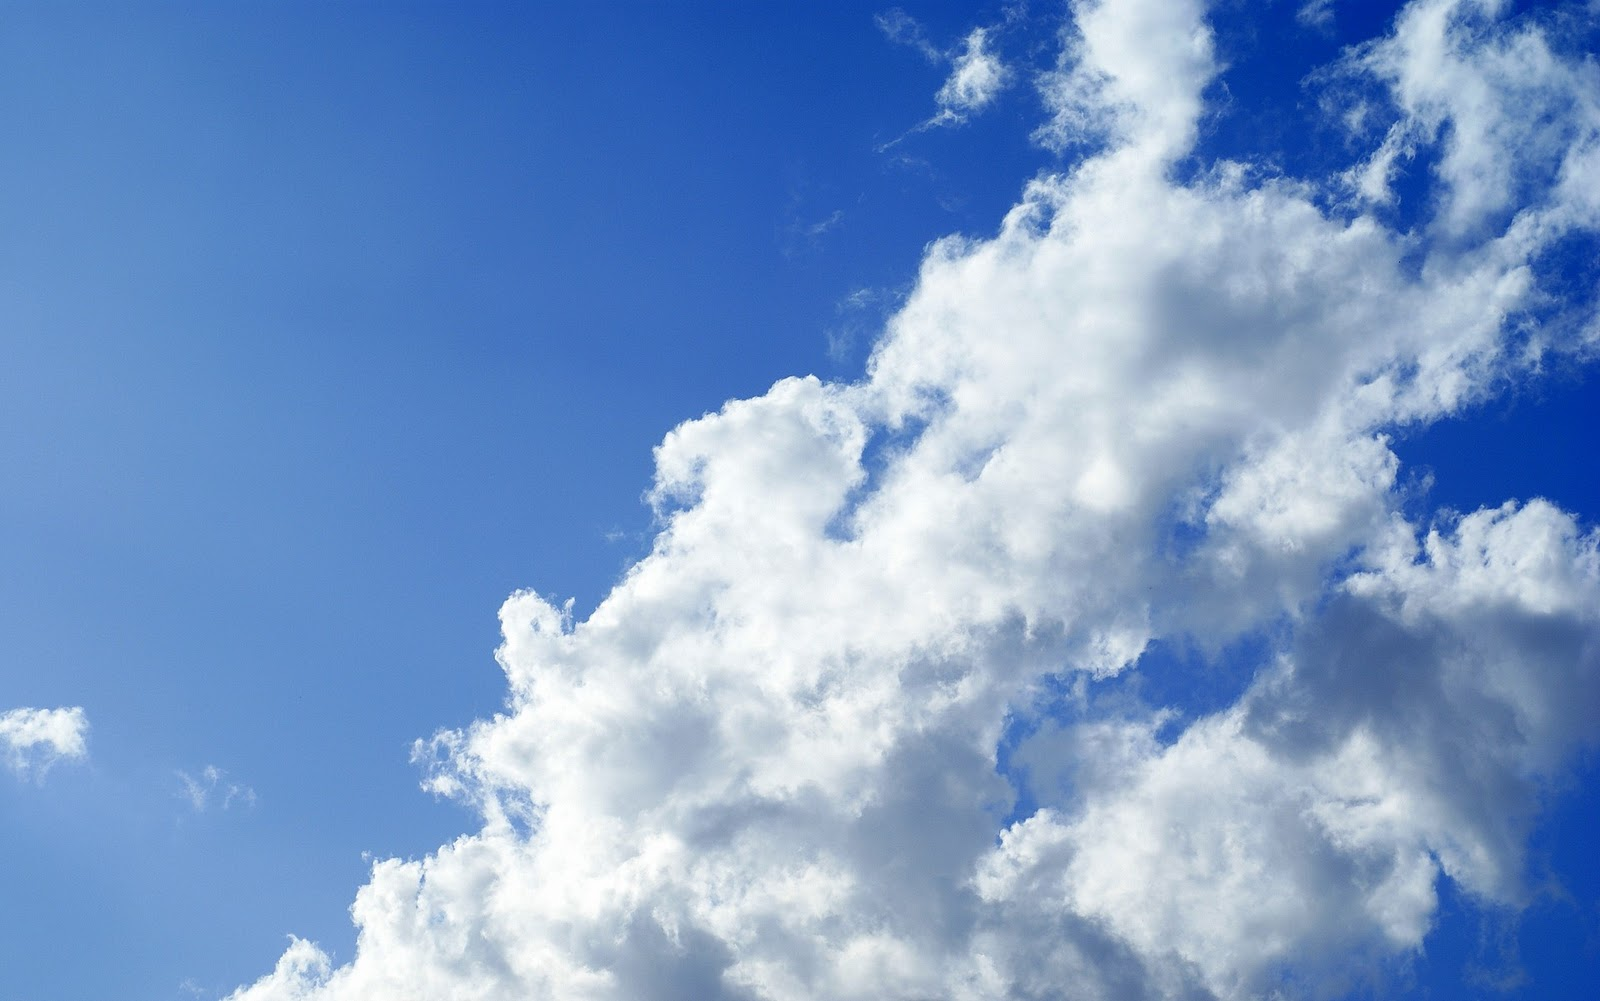 Sky Cloud Wallpapers Hd: Image Globe - Wallpapers